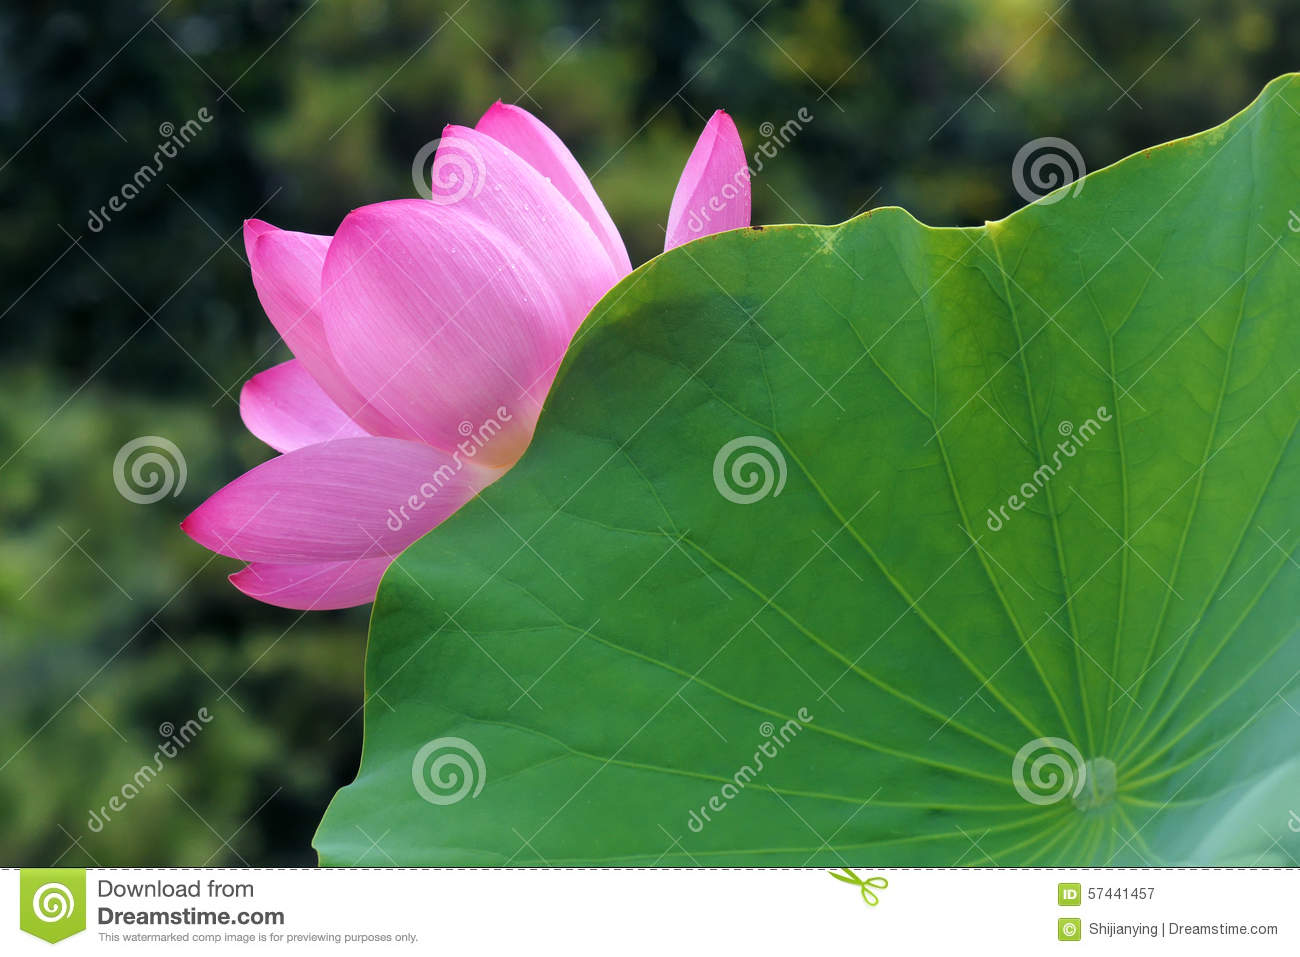 Lotus Flower And Leaf Stock Image Image Of Pink Hydrophyte 57441457